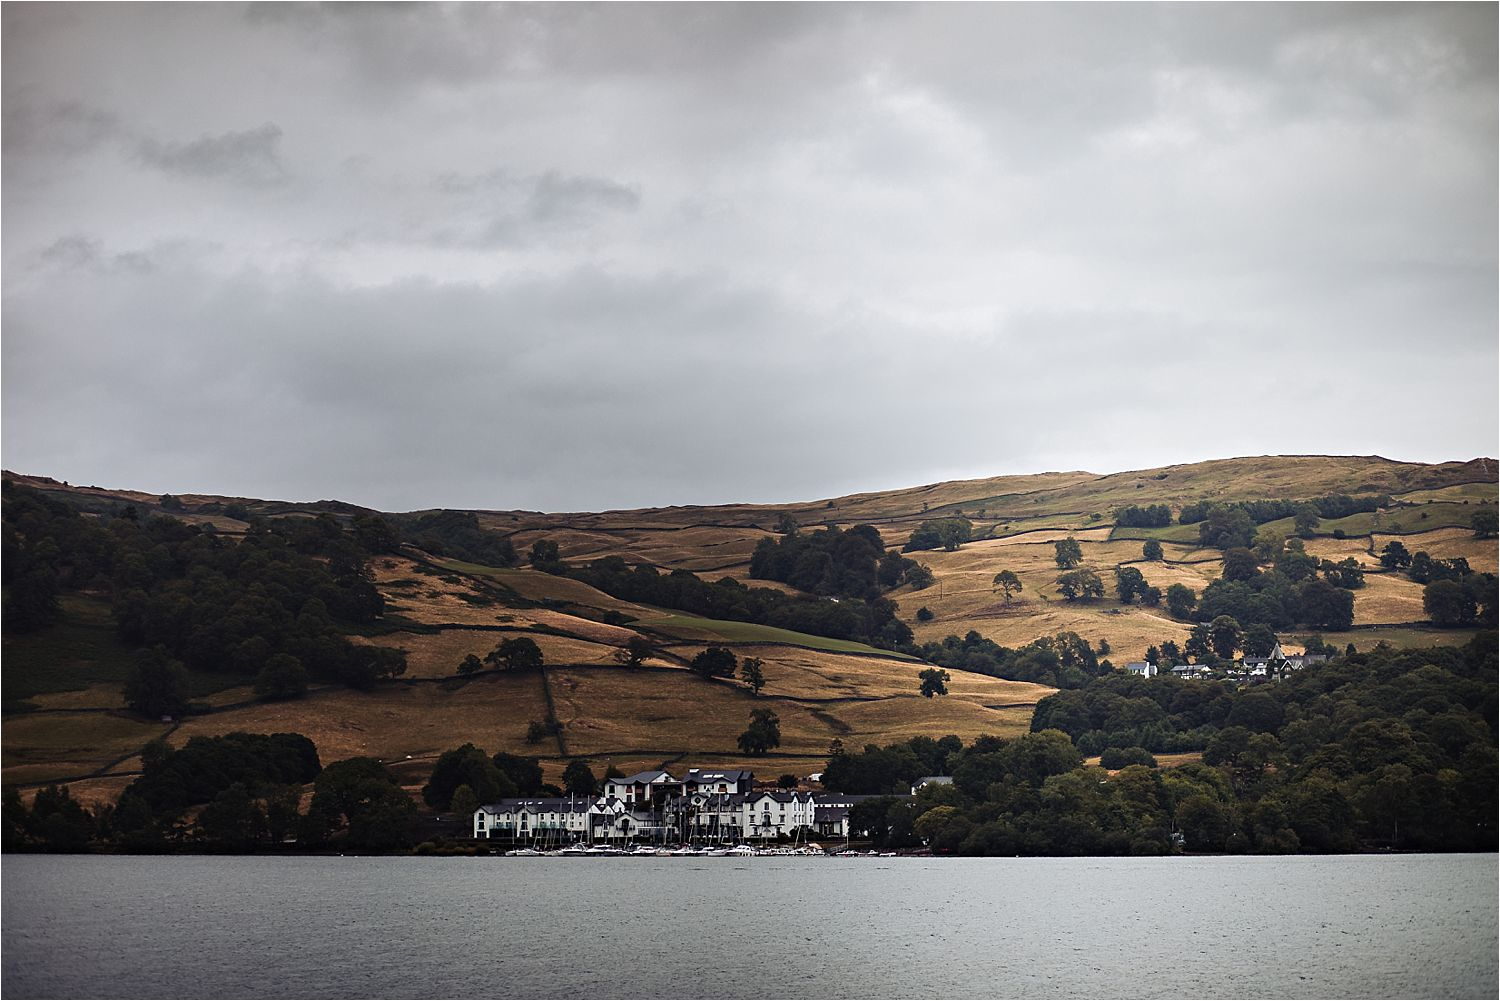 panoramic image of Low Wood Bay from the middle of Lake Windermere